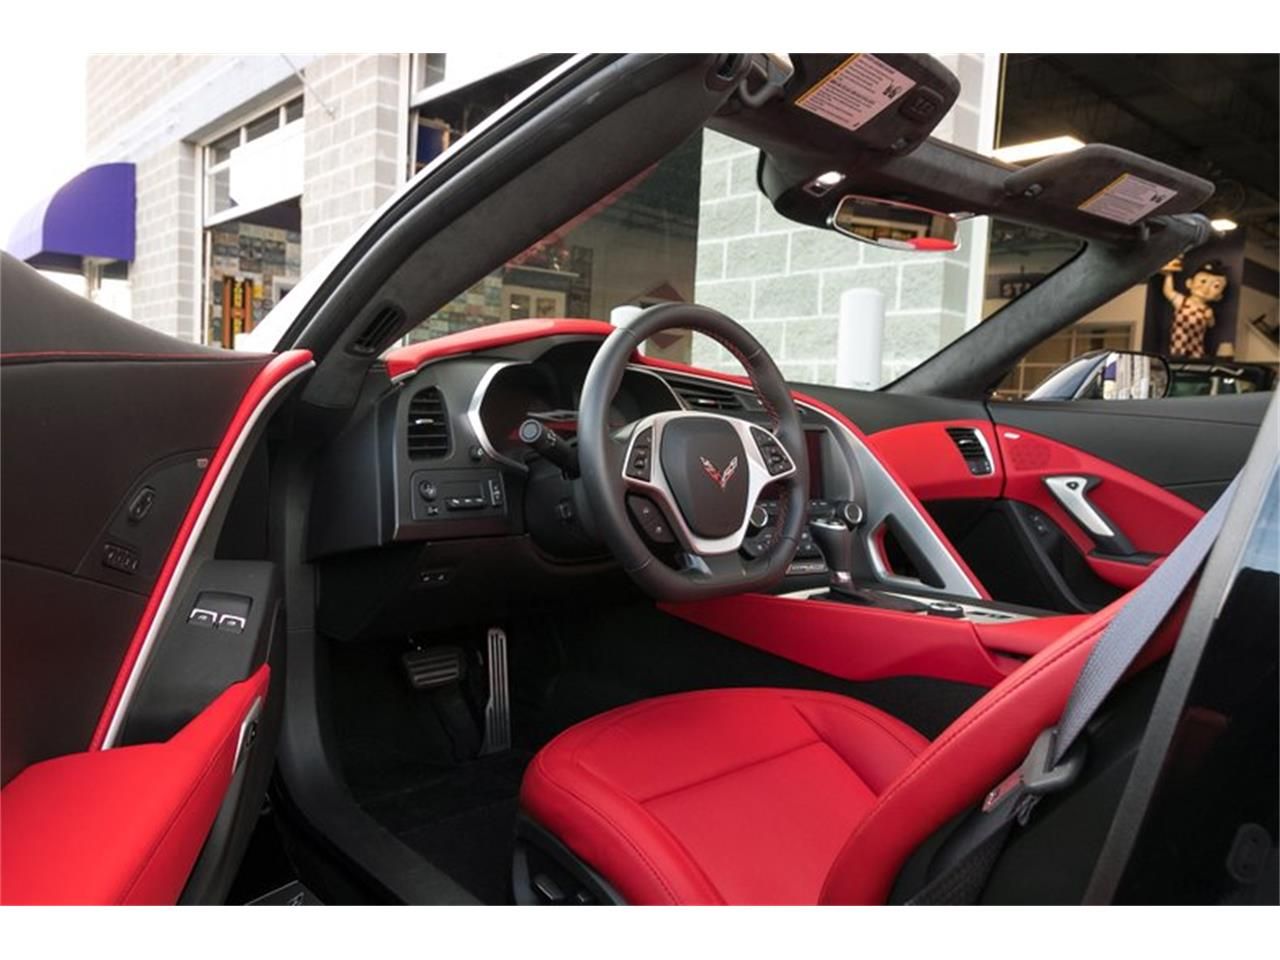 2016 Chevrolet Corvette for sale in St. Charles, MO – photo 13